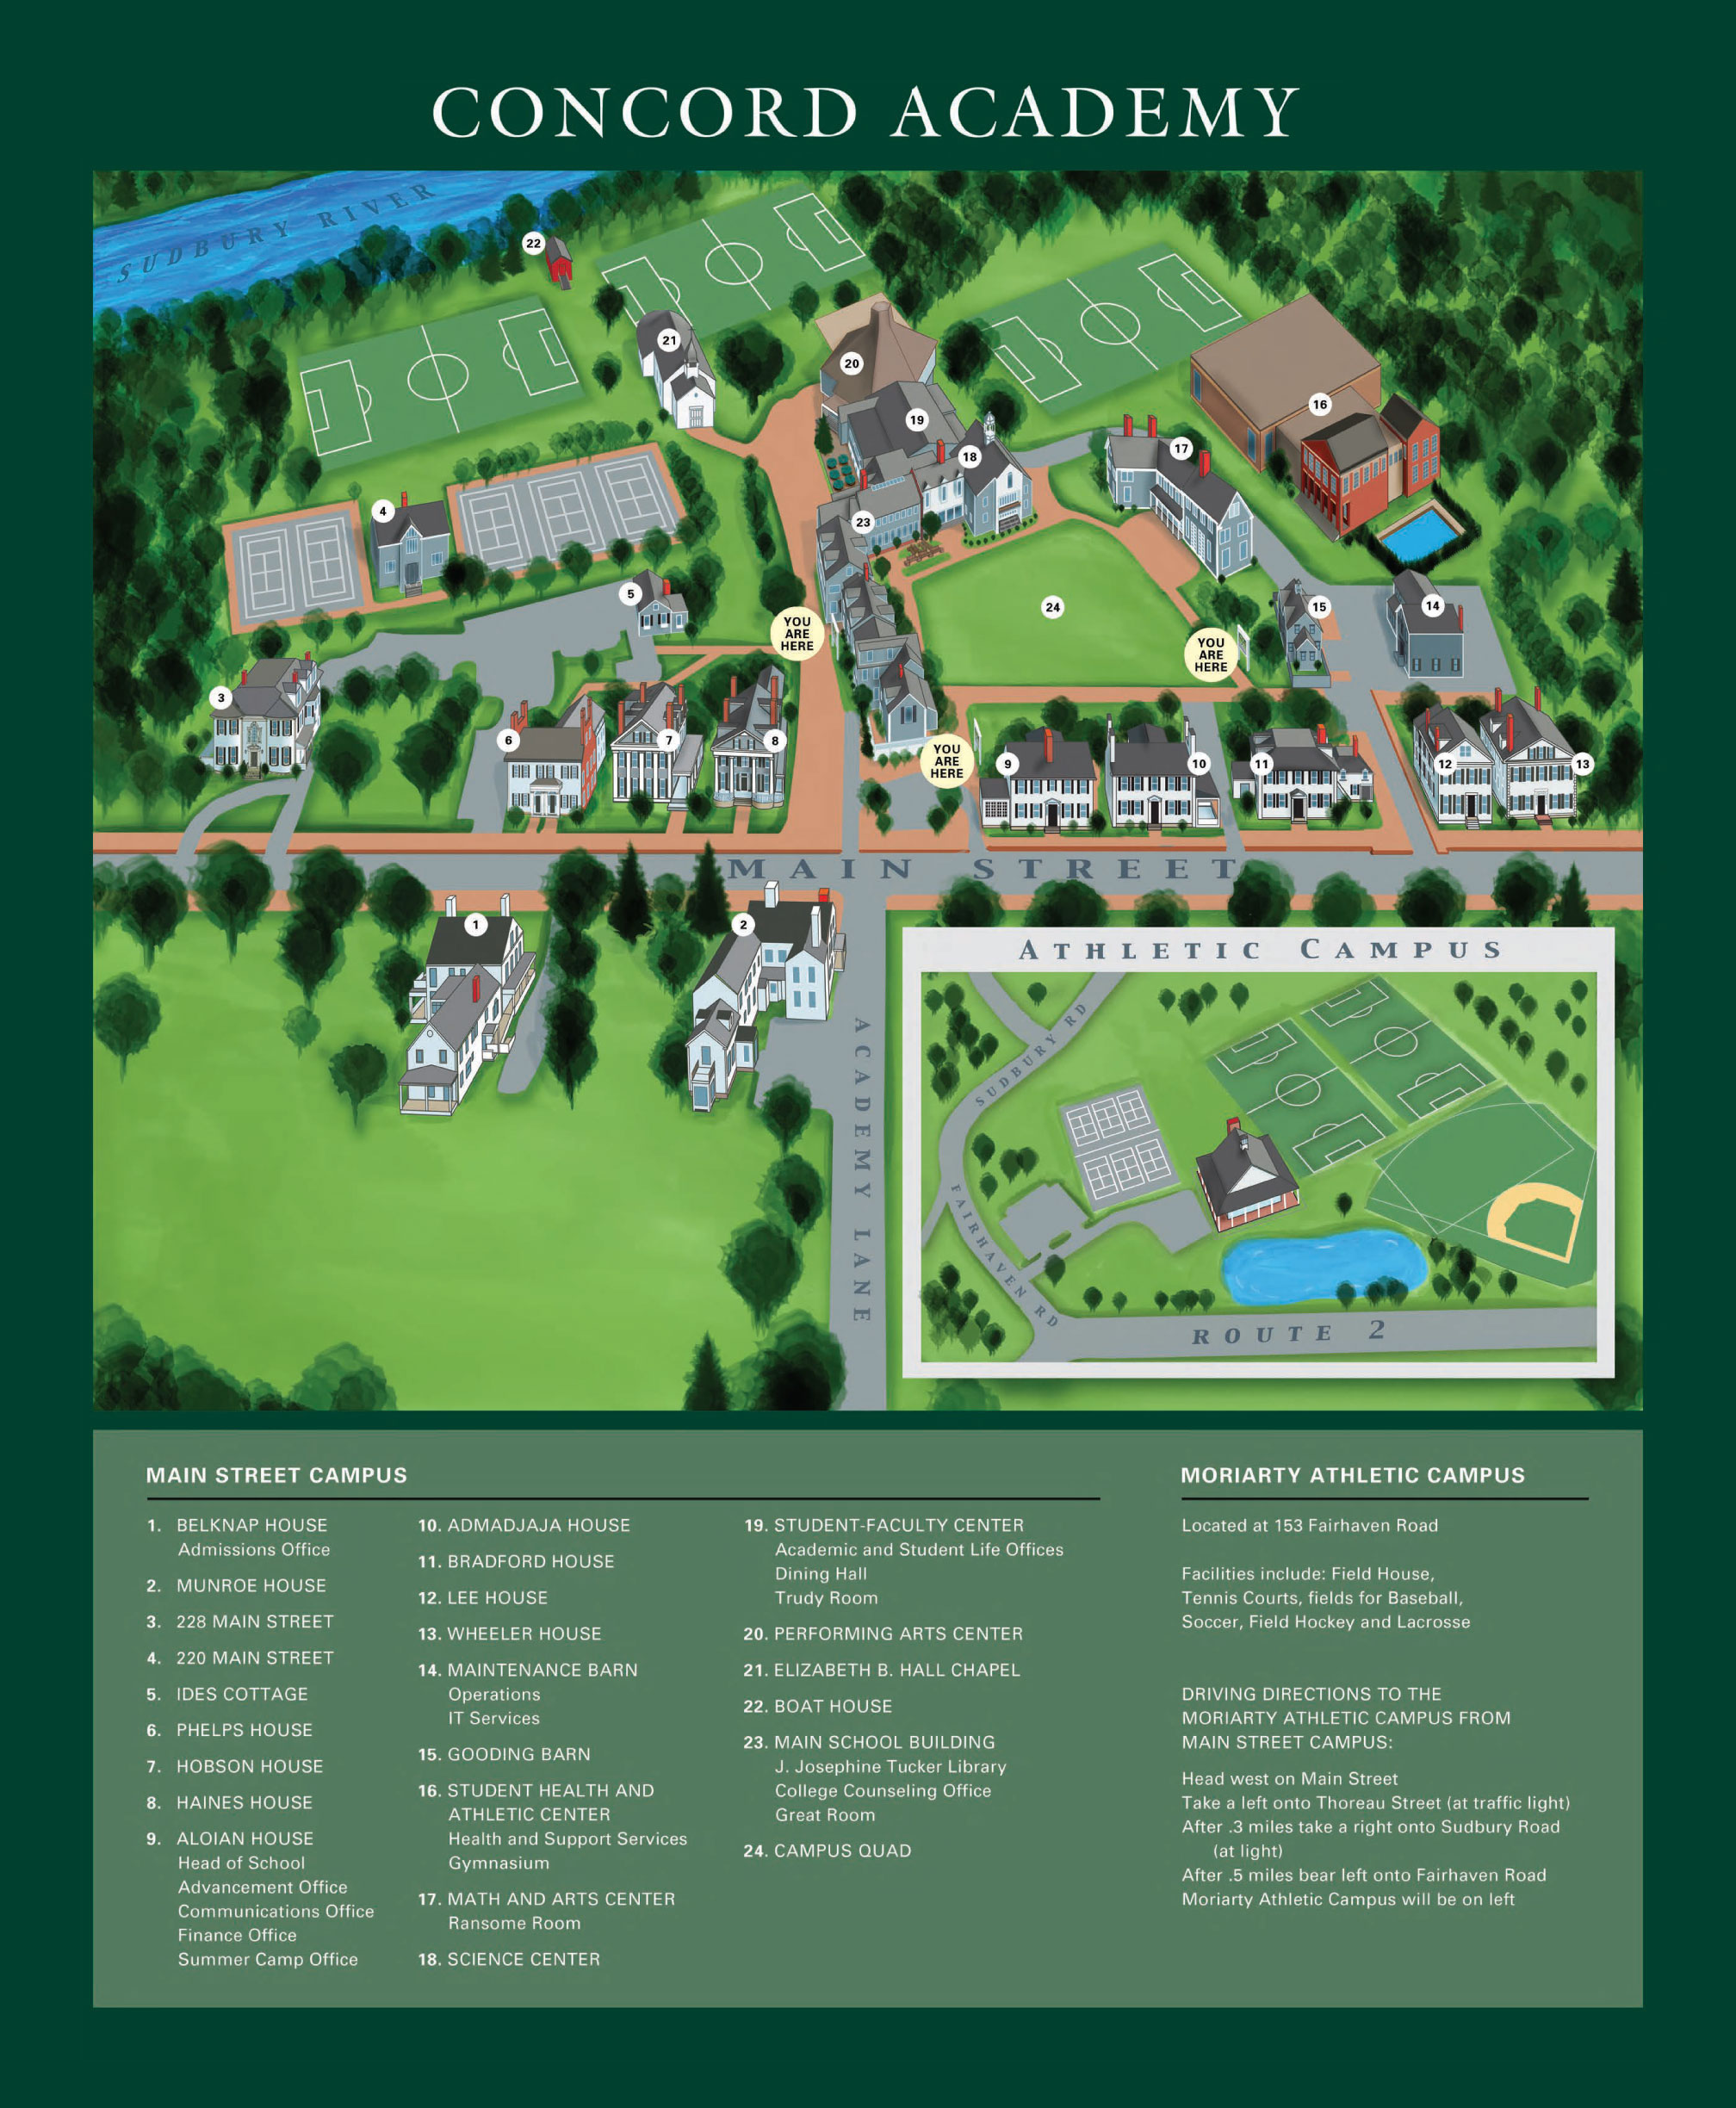 concord campus map Contact Us Directions Concord Academy concord campus map